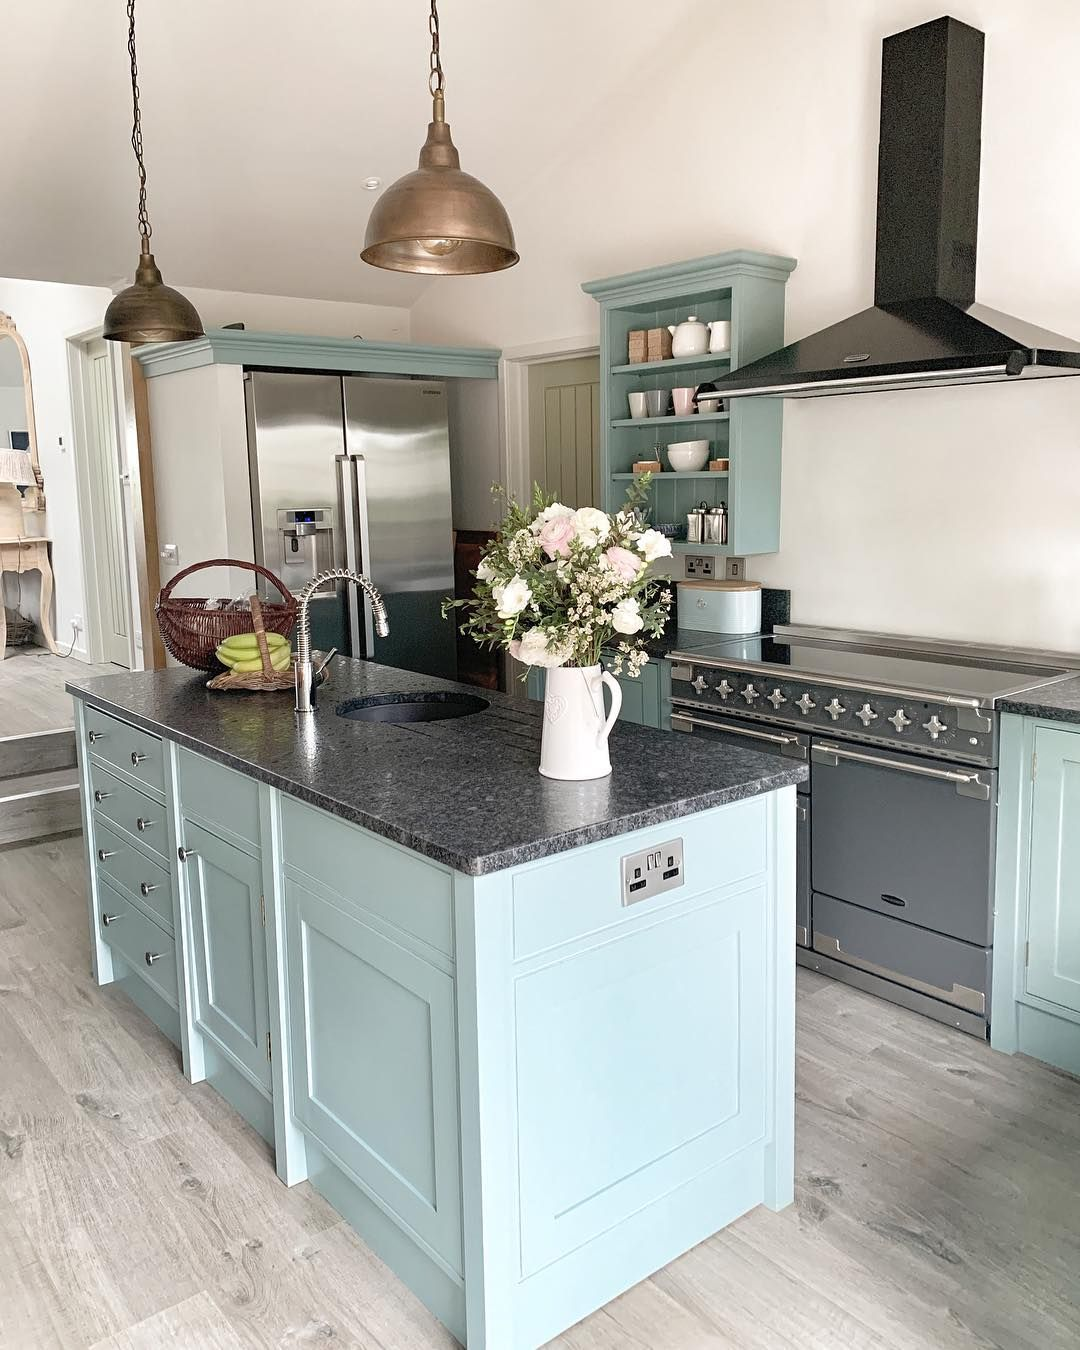 Baby Blue Kitchen Units And Island With Brass Light Fittings And Large Rangemaster Kitchen Kitchenislan Kitchen Inspirations Blue Kitchens Home Decor Kitchen